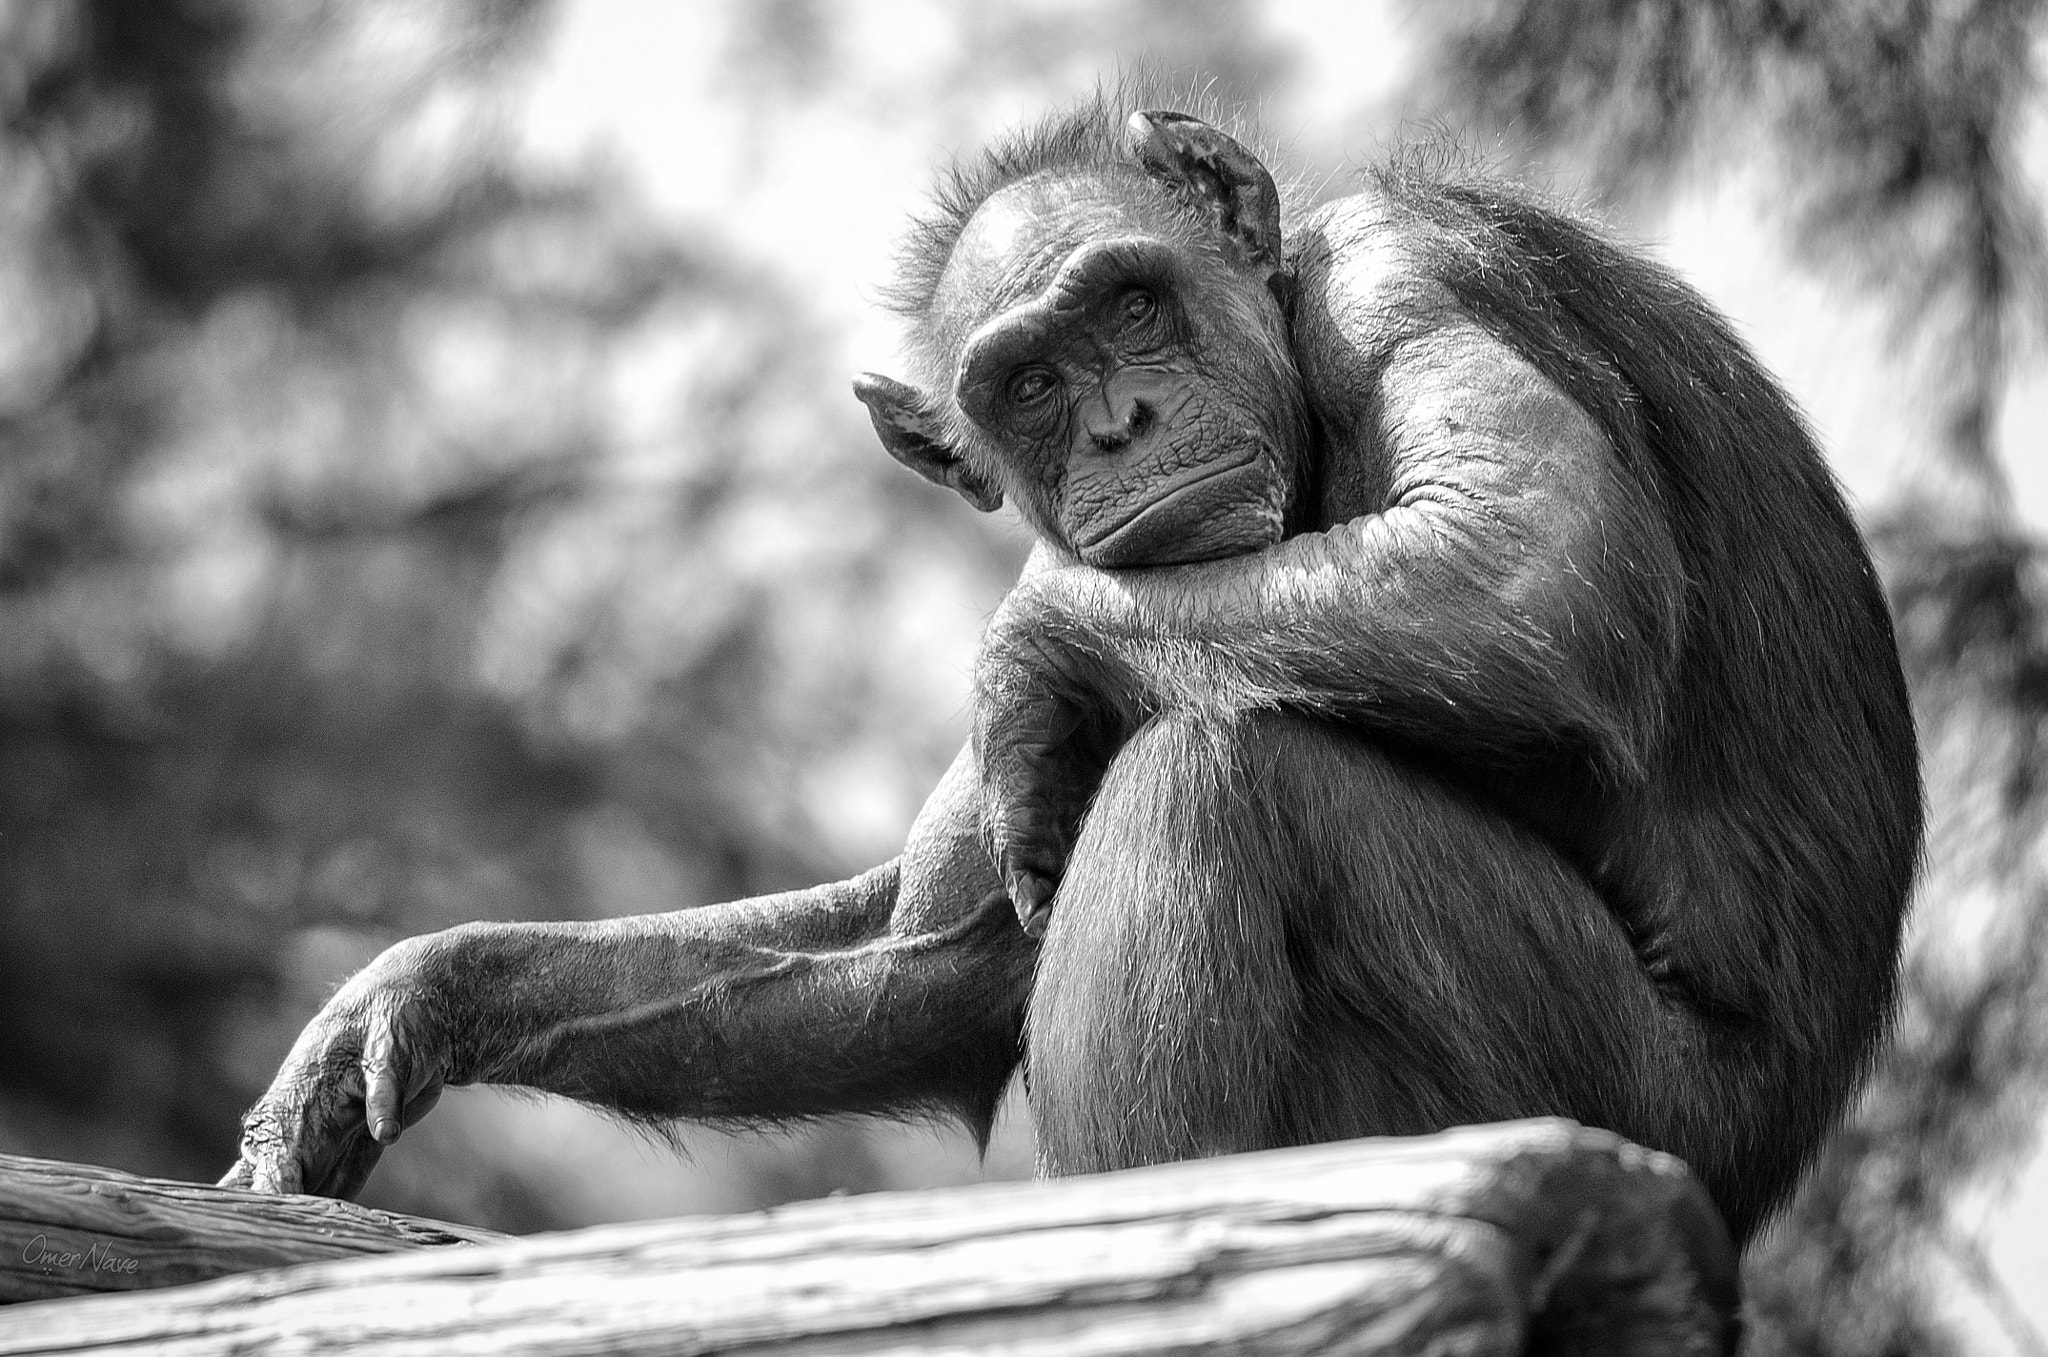 Photograph The Thinker by Omer Nave on 500px